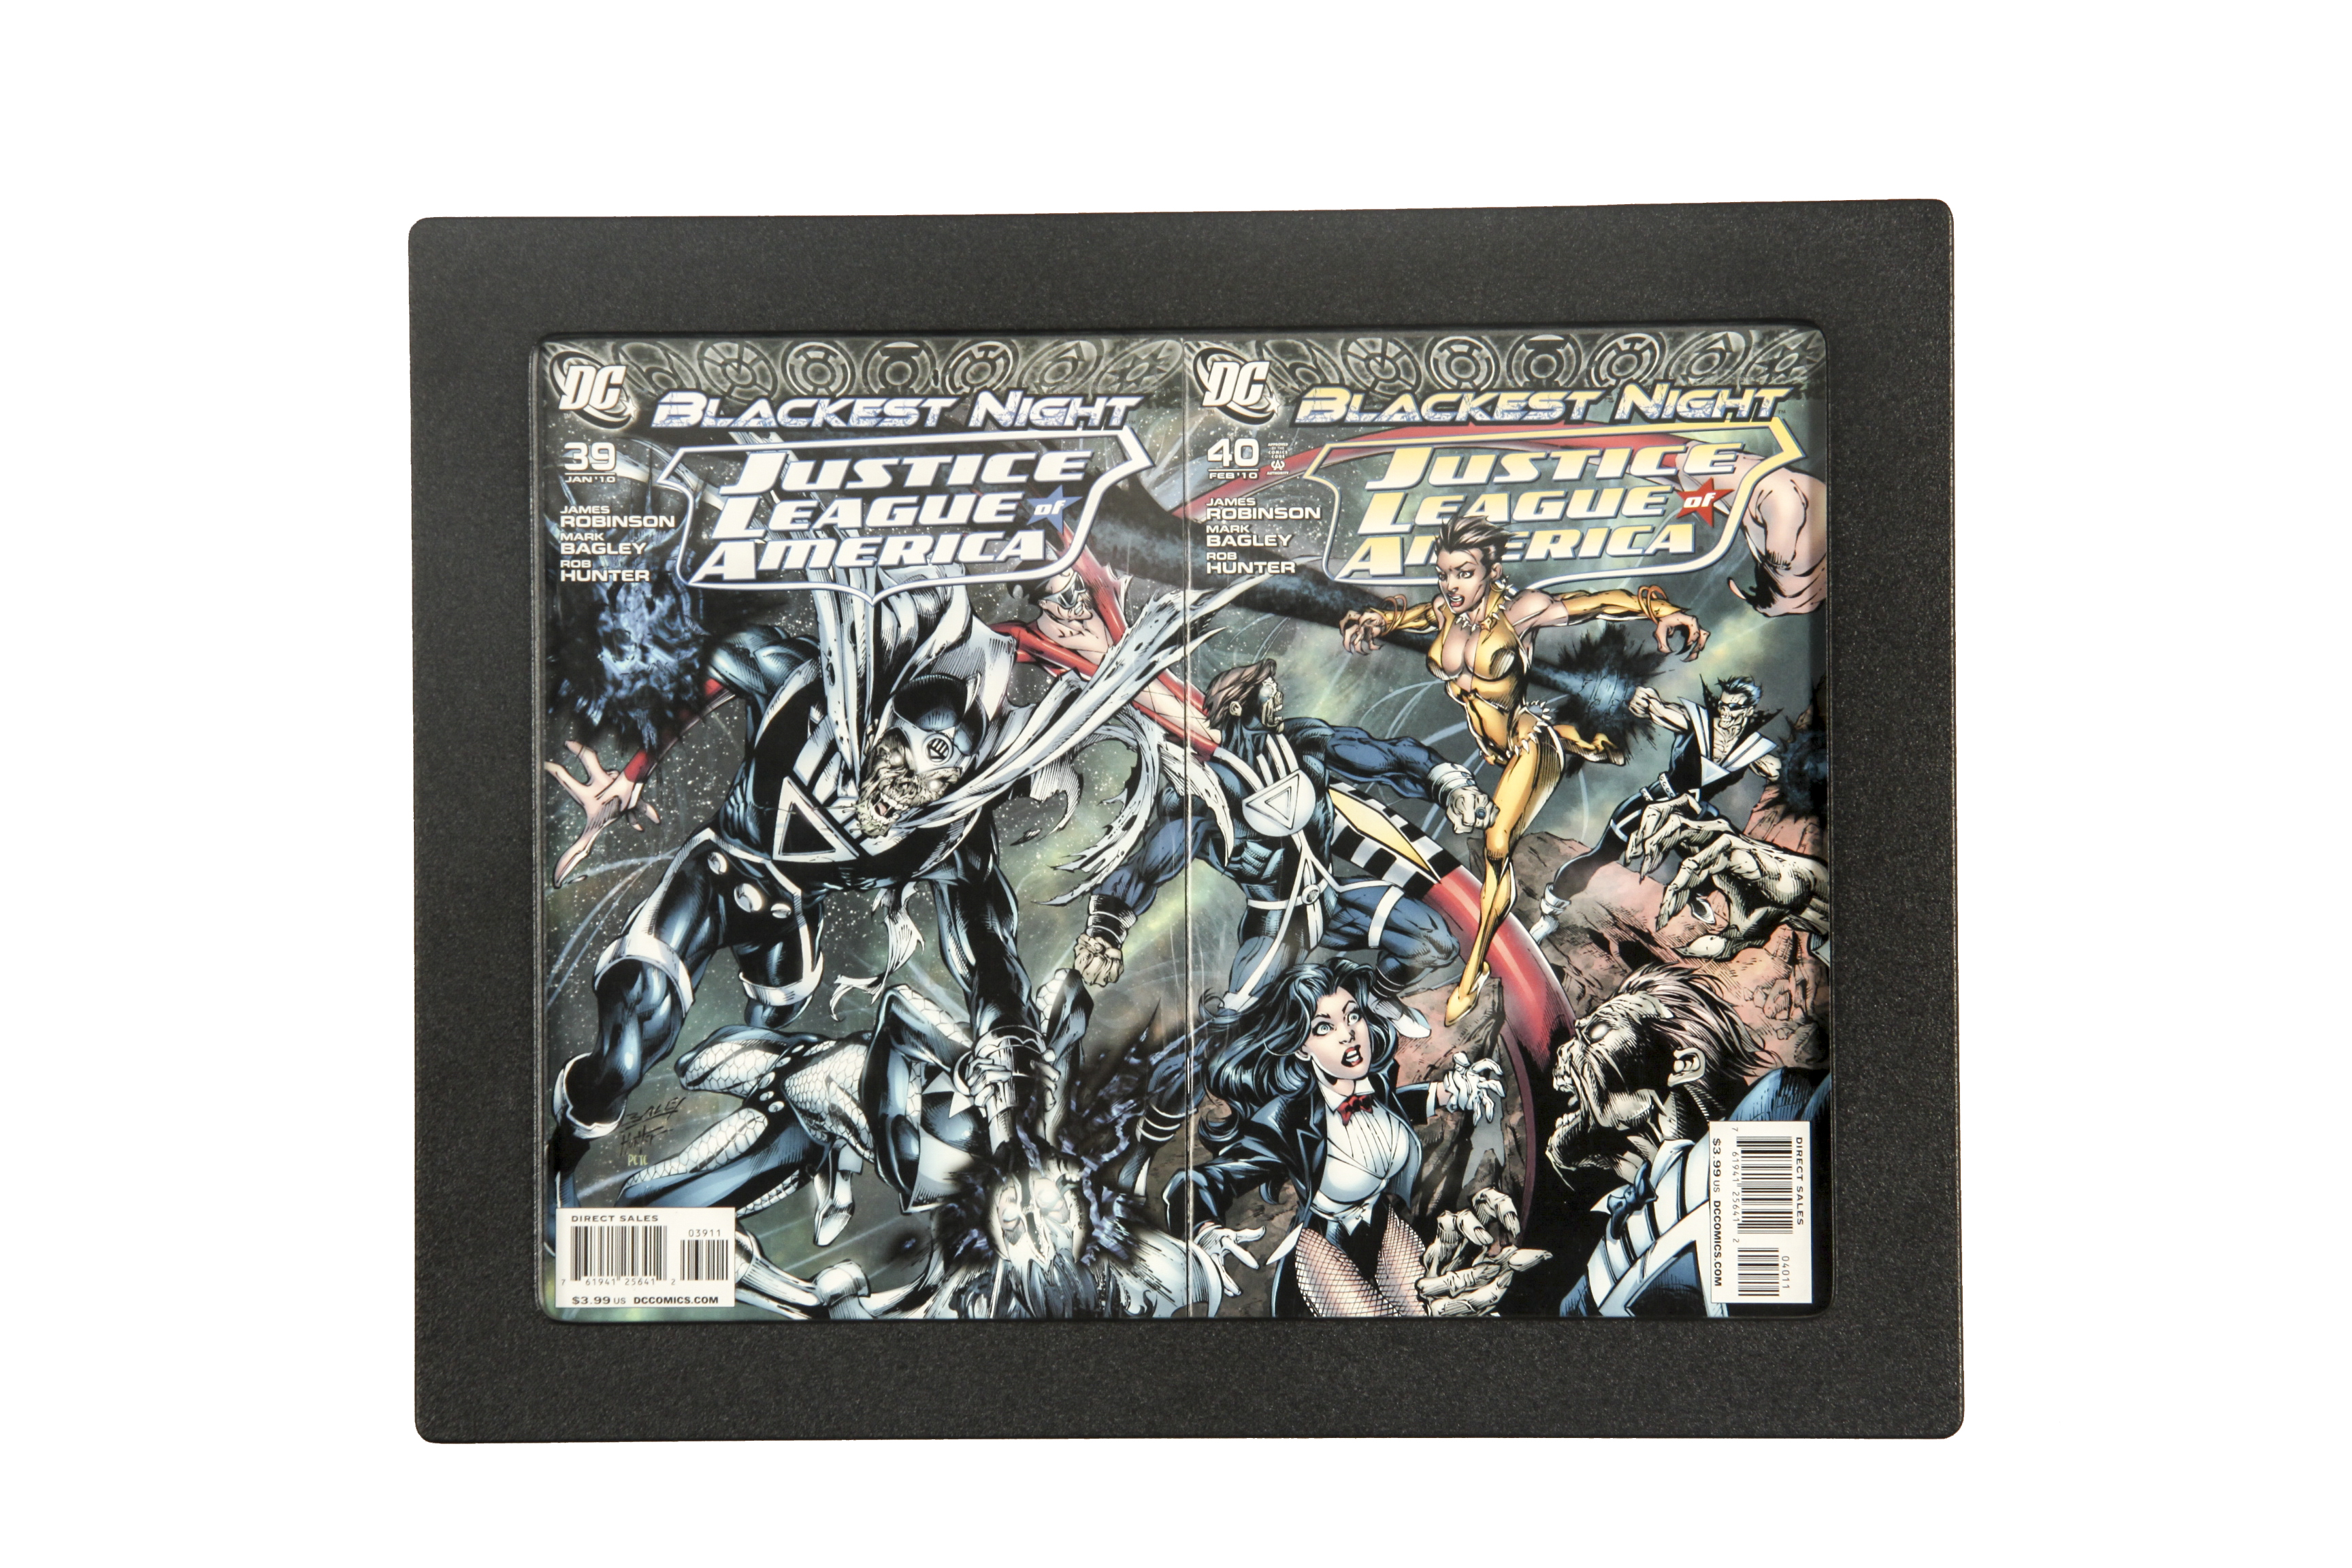 Comic Book Frames and Displays from The Collectors Resource